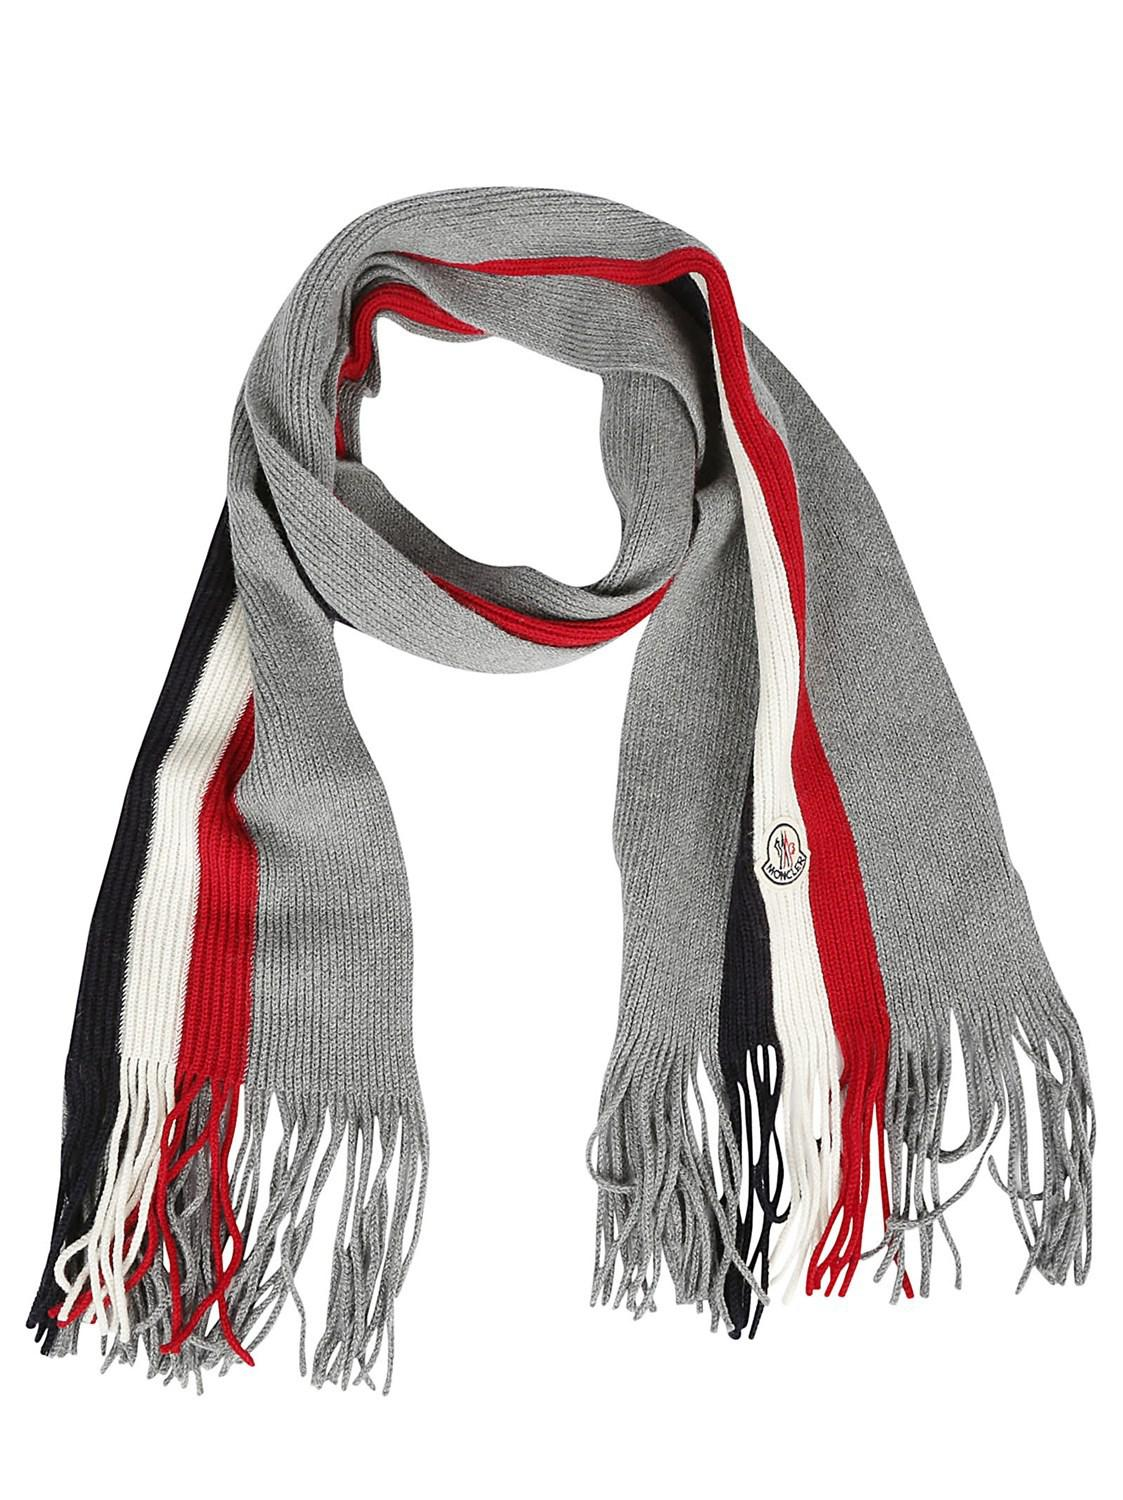 Moncler. Men's Gray Scarf